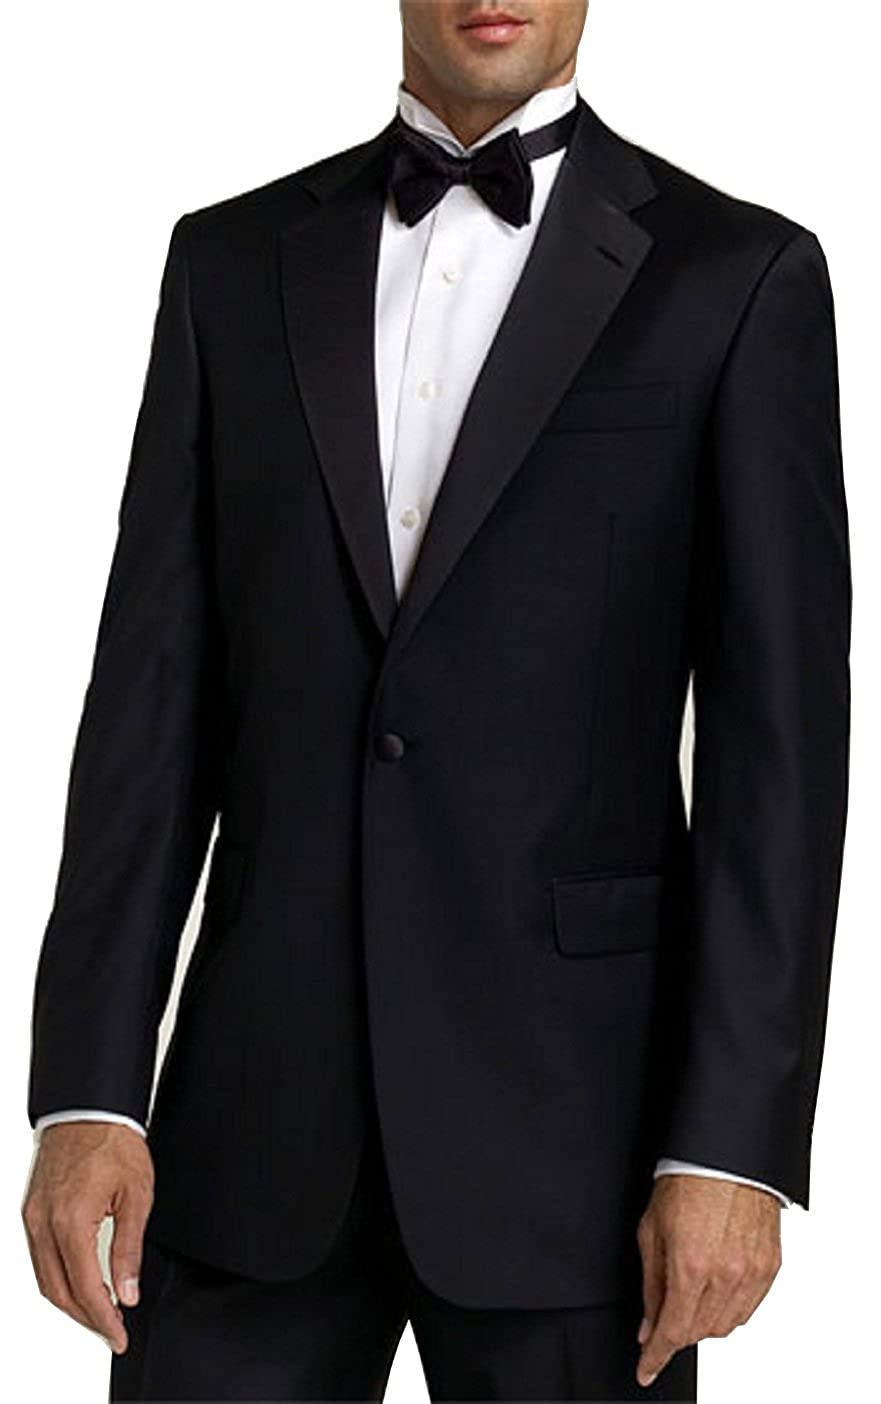 Neil Allyn Tuxedo with Flat Front Pants 3002C-3037P